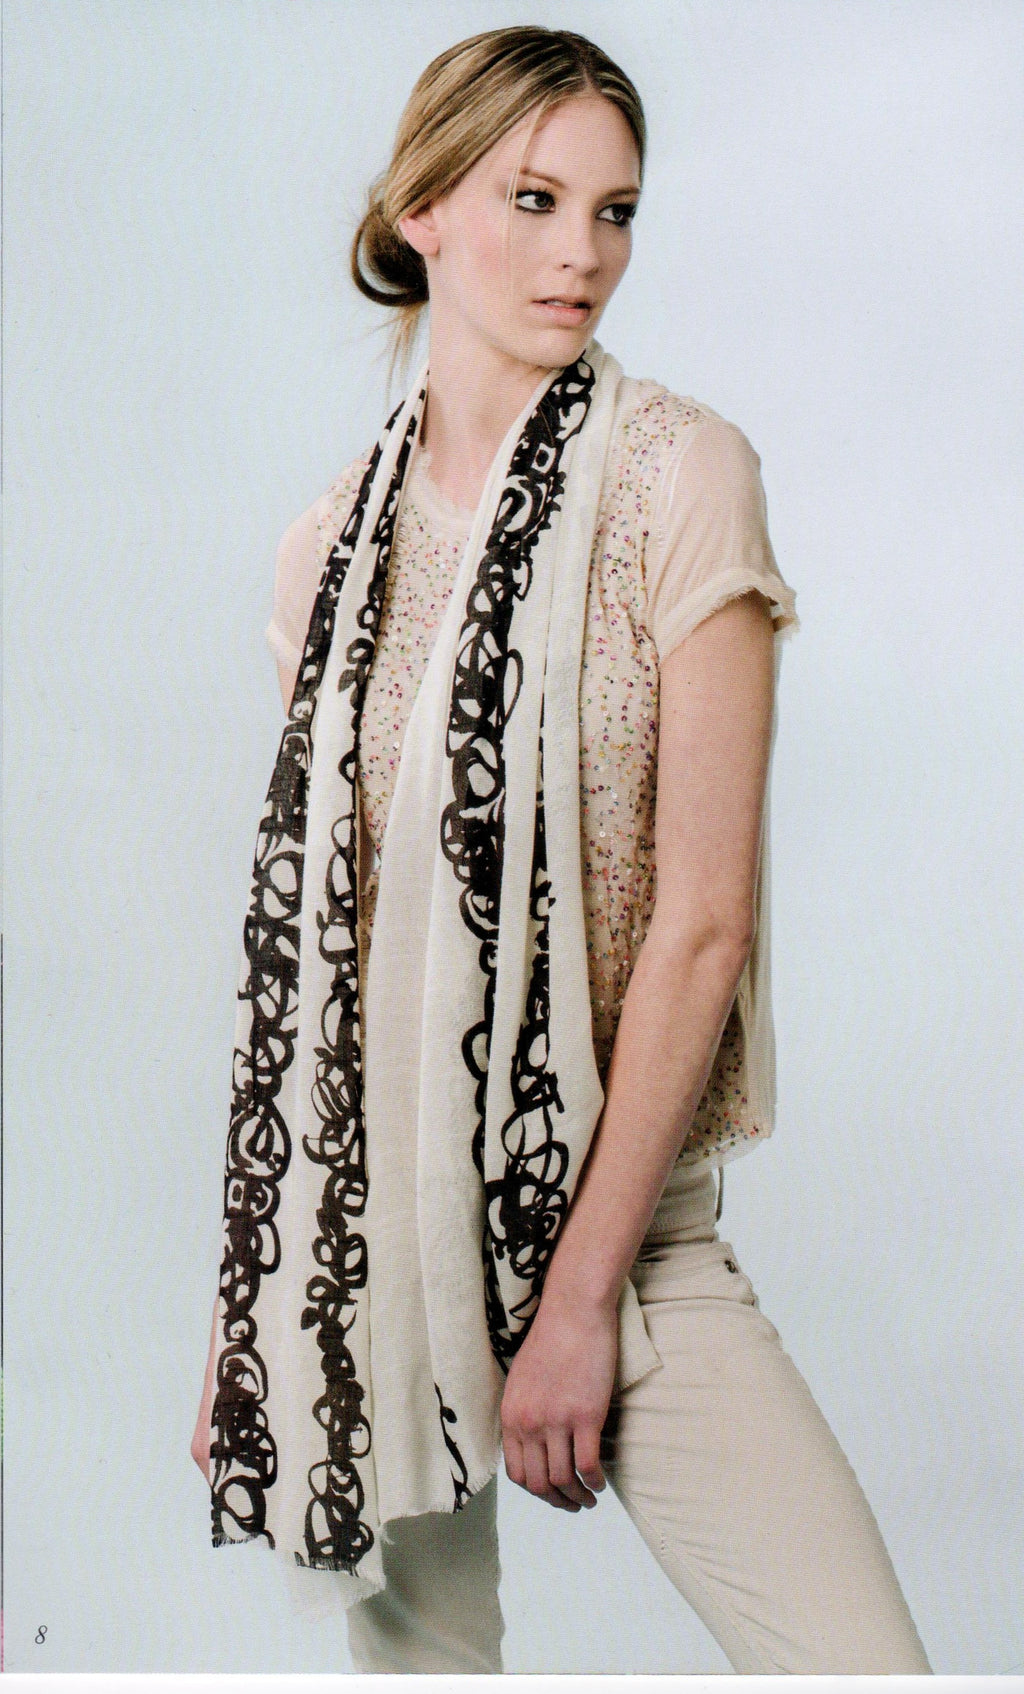 Model wearing Zazou Calligraphy Scarf draped across her neck and down her front.